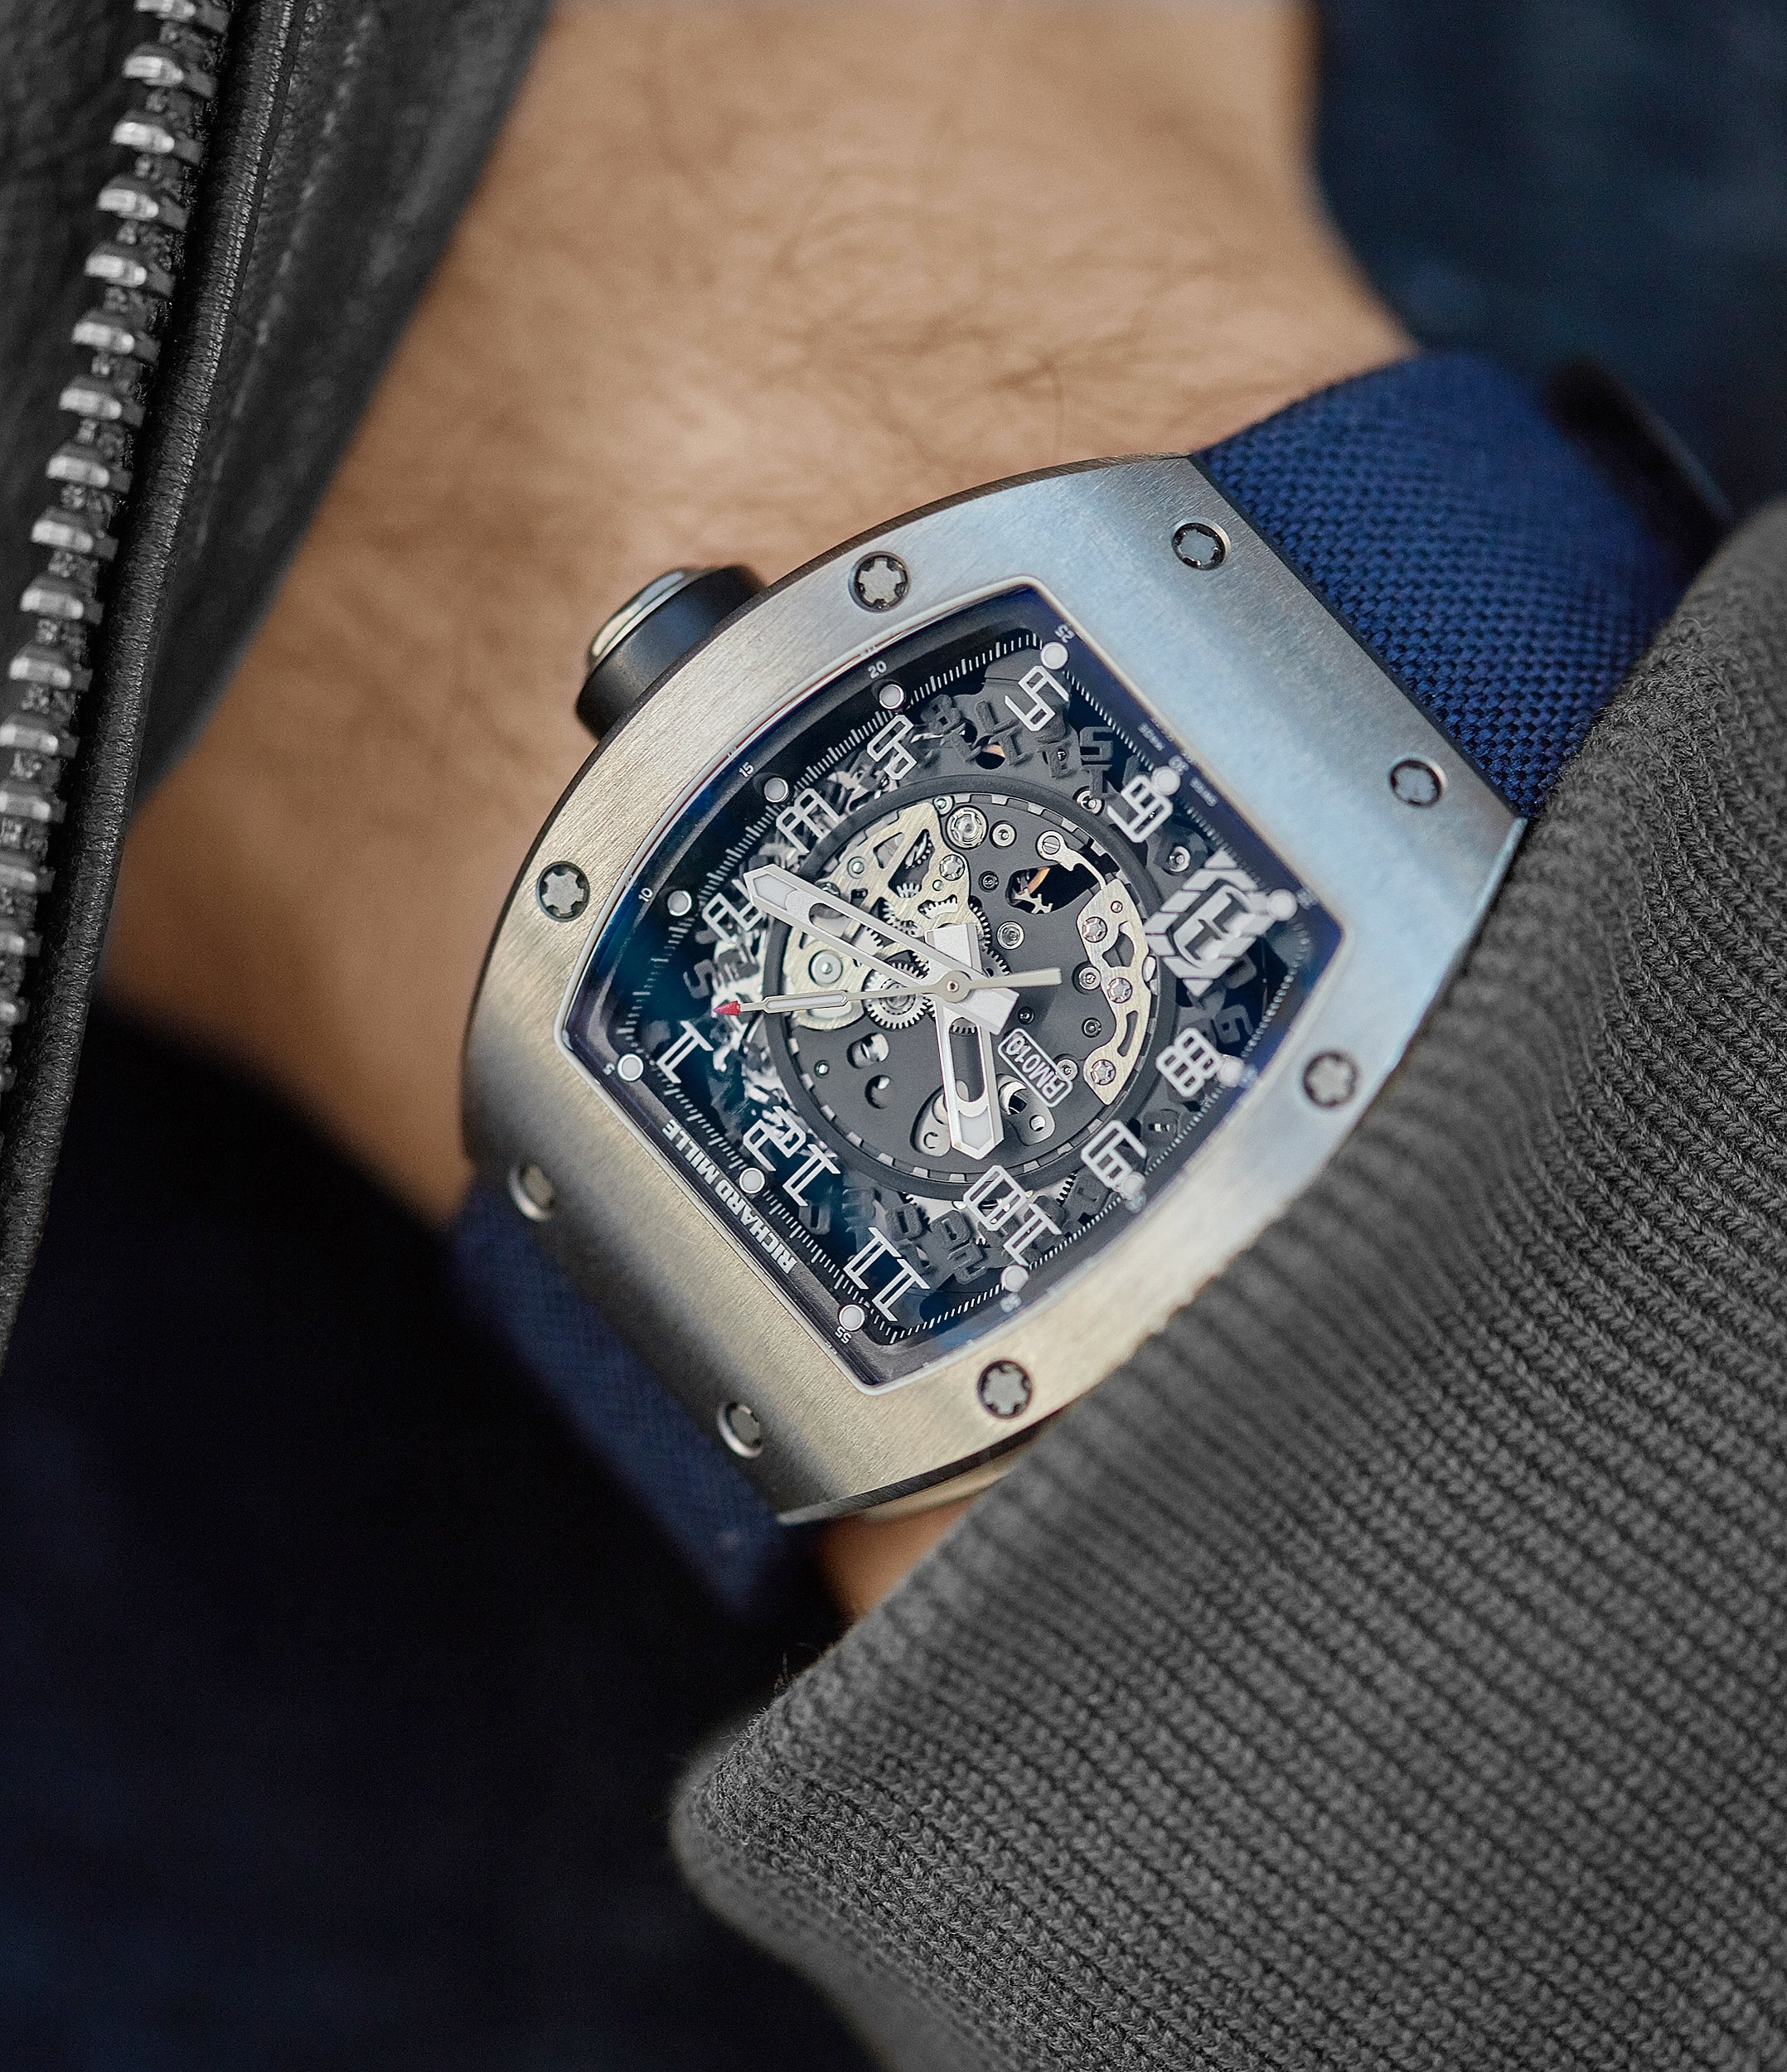 men's luxury sport watch Richard Mille RM010 titanium rare luxury sport watch by independent watchmaker for sale online at A Collected Man London UK specialist of rare watches